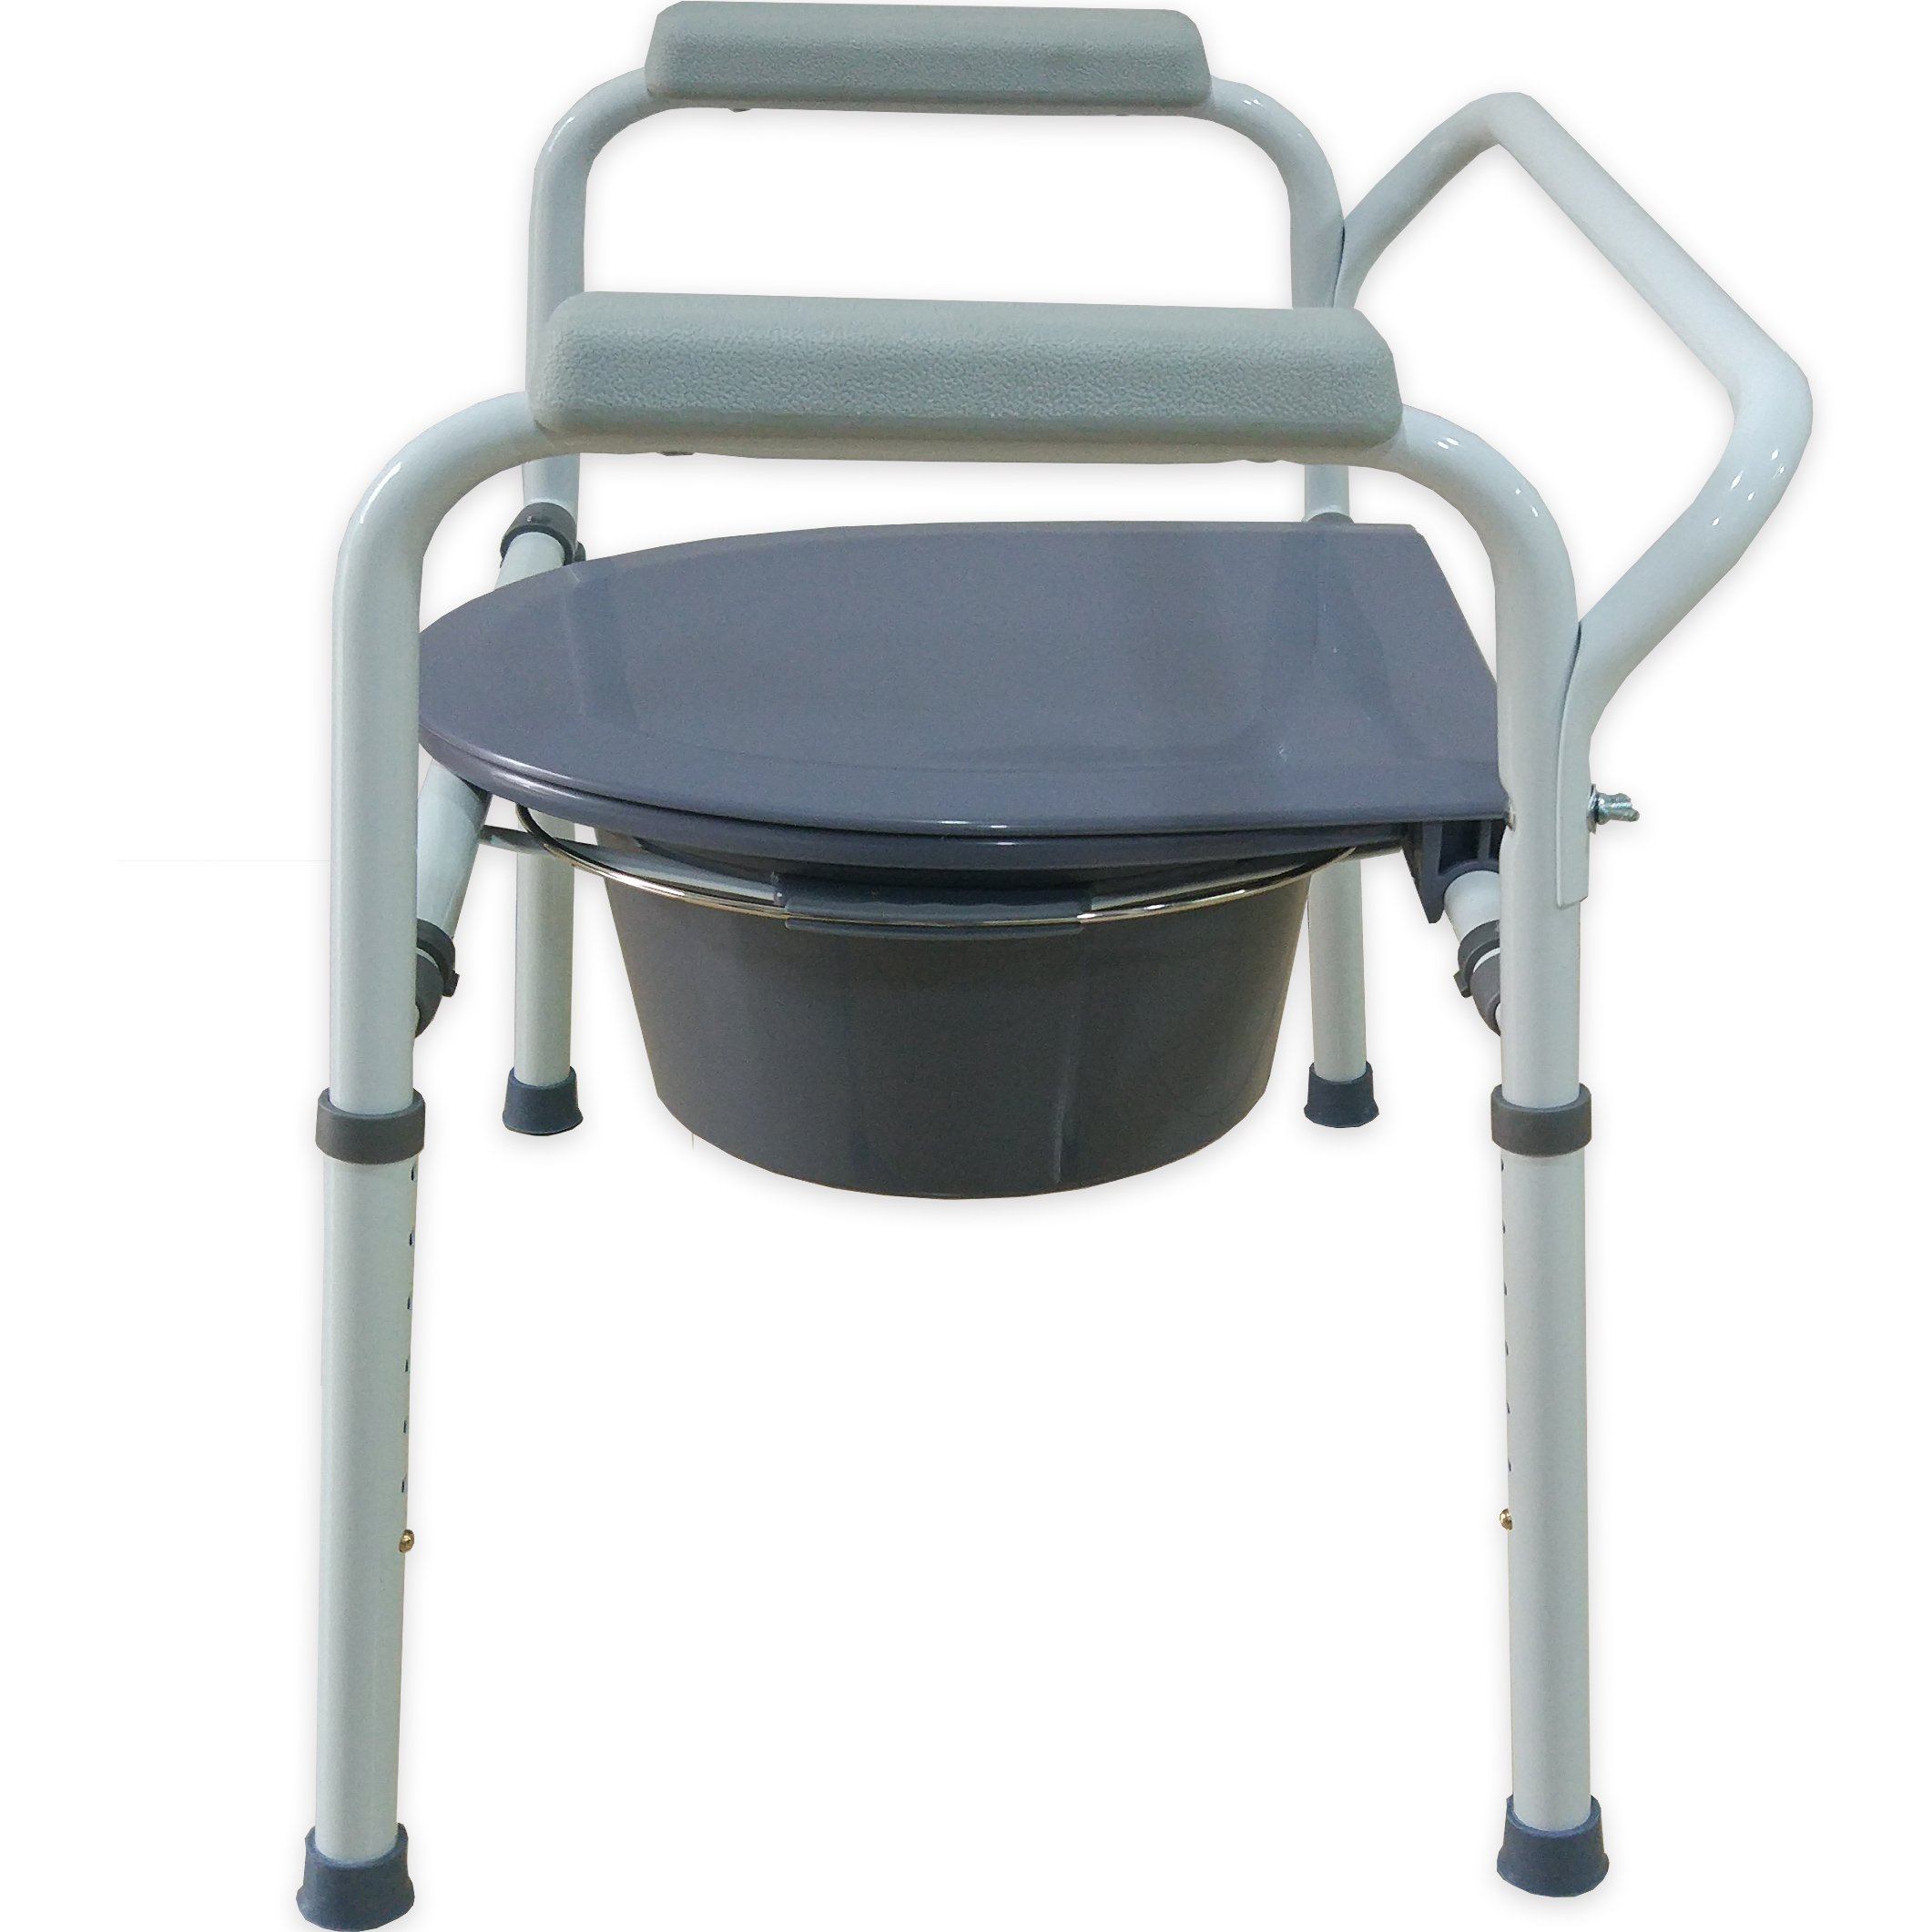 Medokare Bedside Commode Chair - Heavy-Duty Steel Commode Seat, Bedside Potty Chair for Adults, Medical Handicap Toilet Seat with Handles and Bucket by Medokare (Image #4)